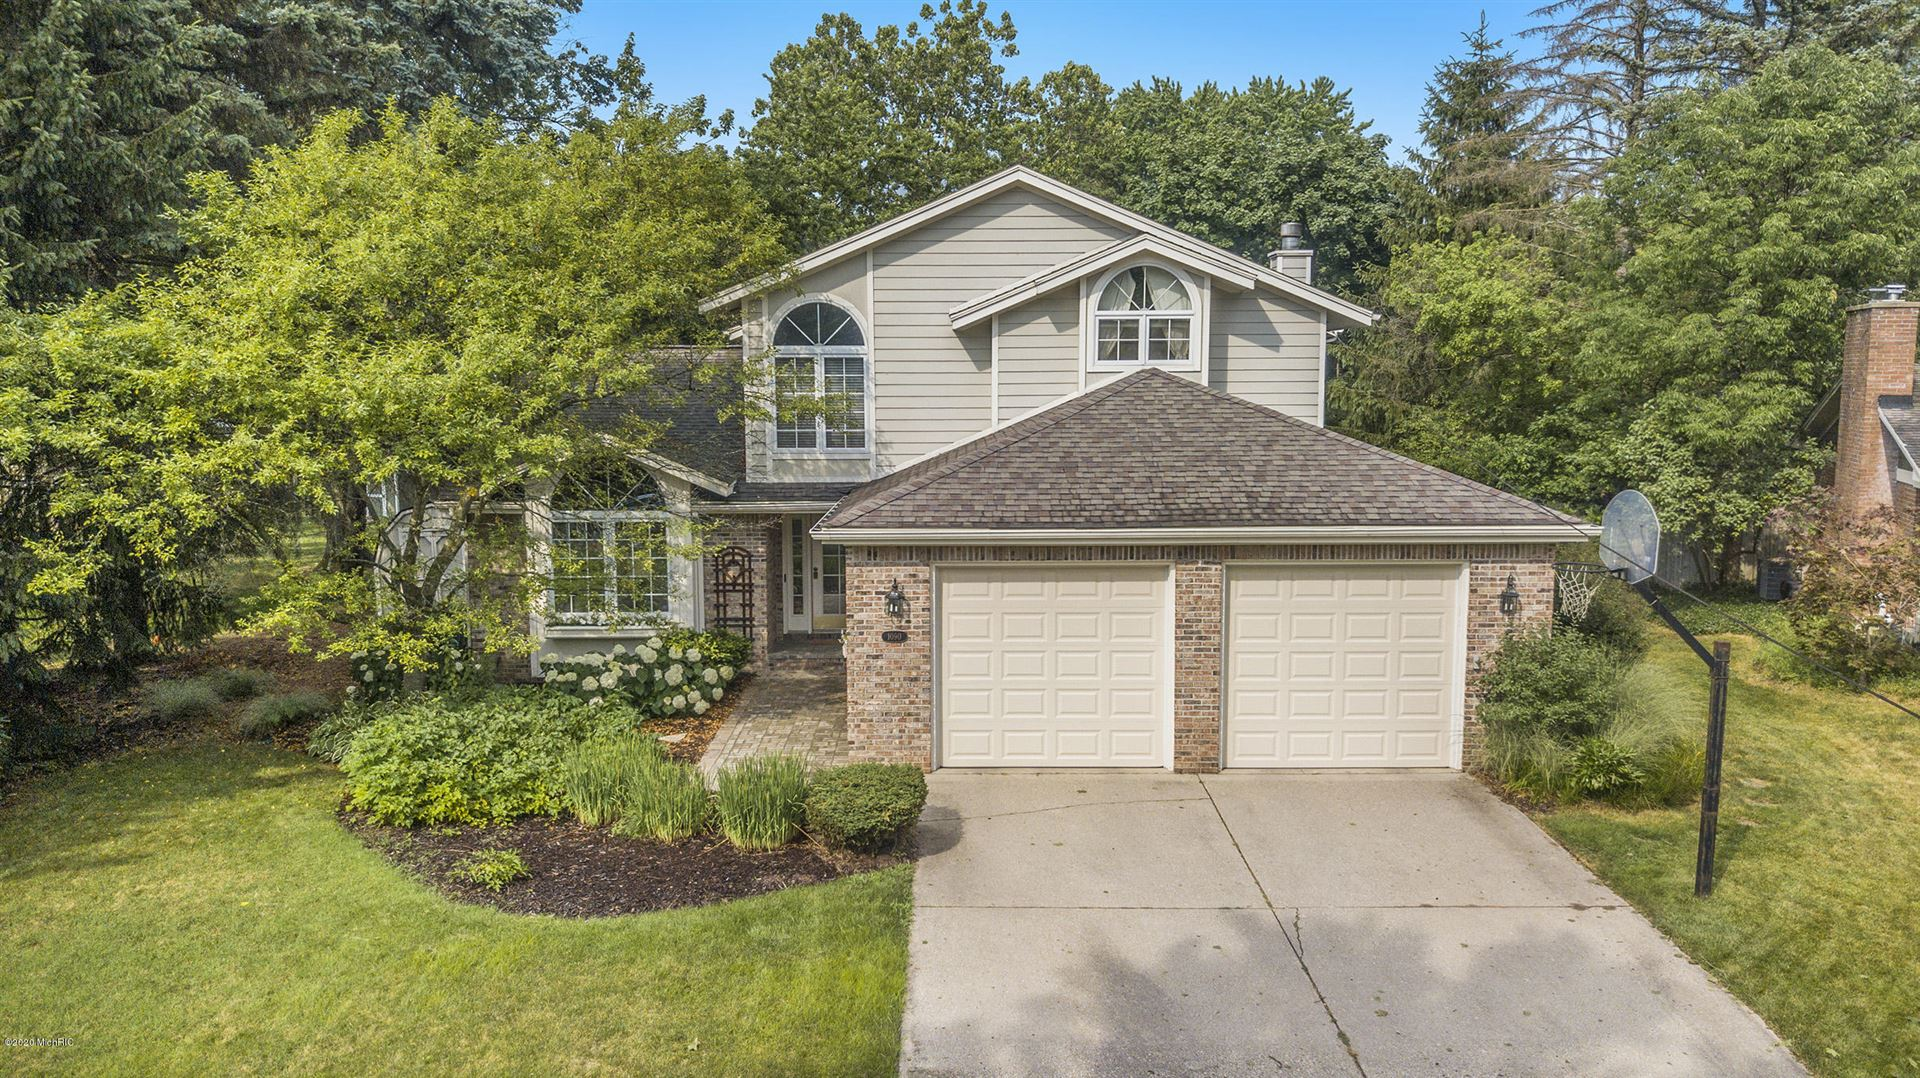 Photo of 1090 Idema Drive SE, East Grand Rapids, MI 49506 (MLS # 20026803)